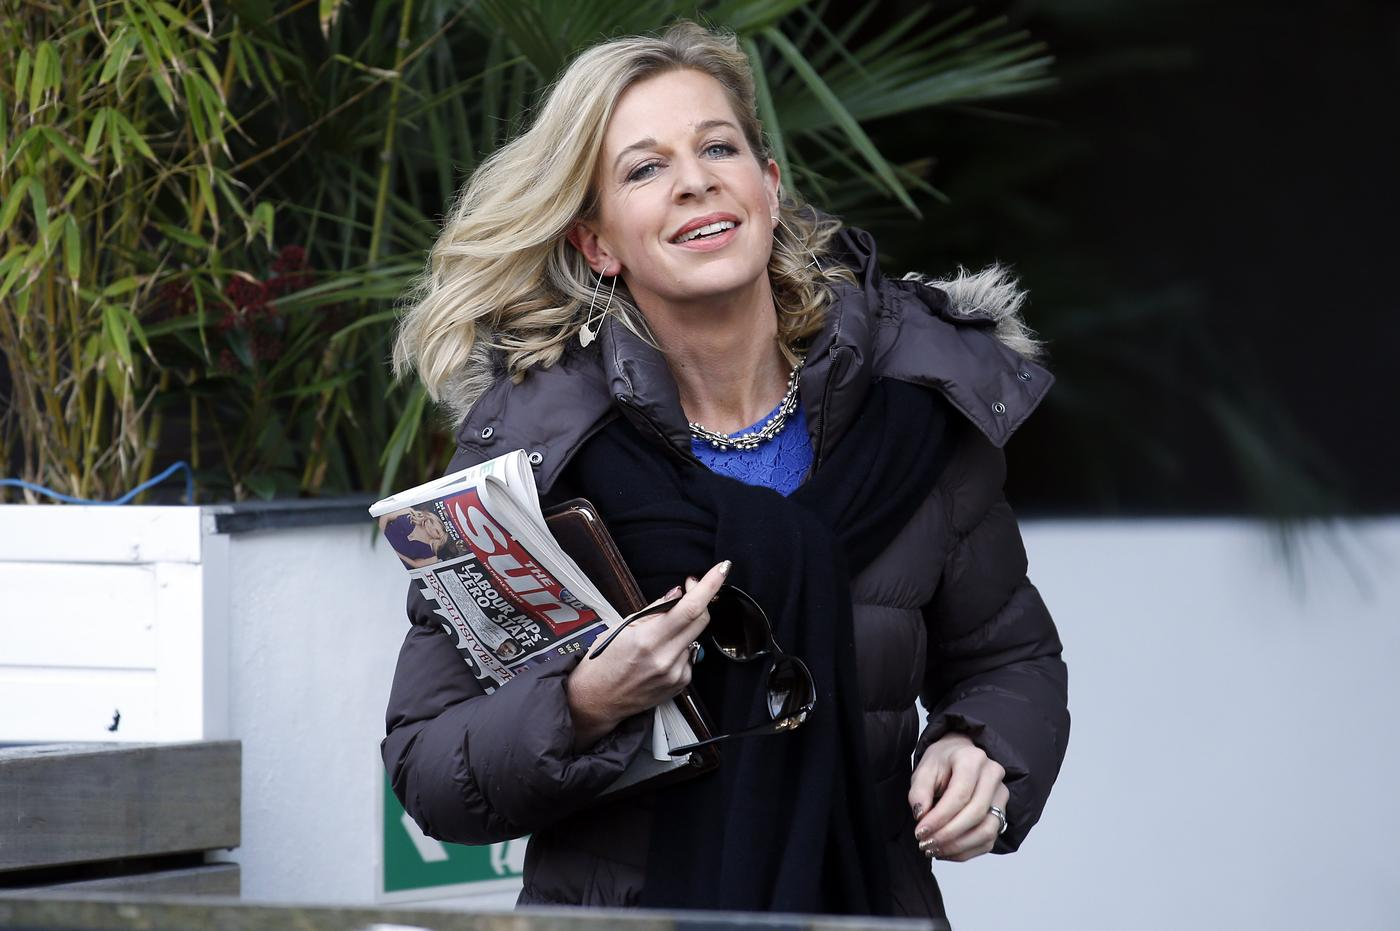 Benefits Street series 2: This is everything Katie Hopkins had to say about it